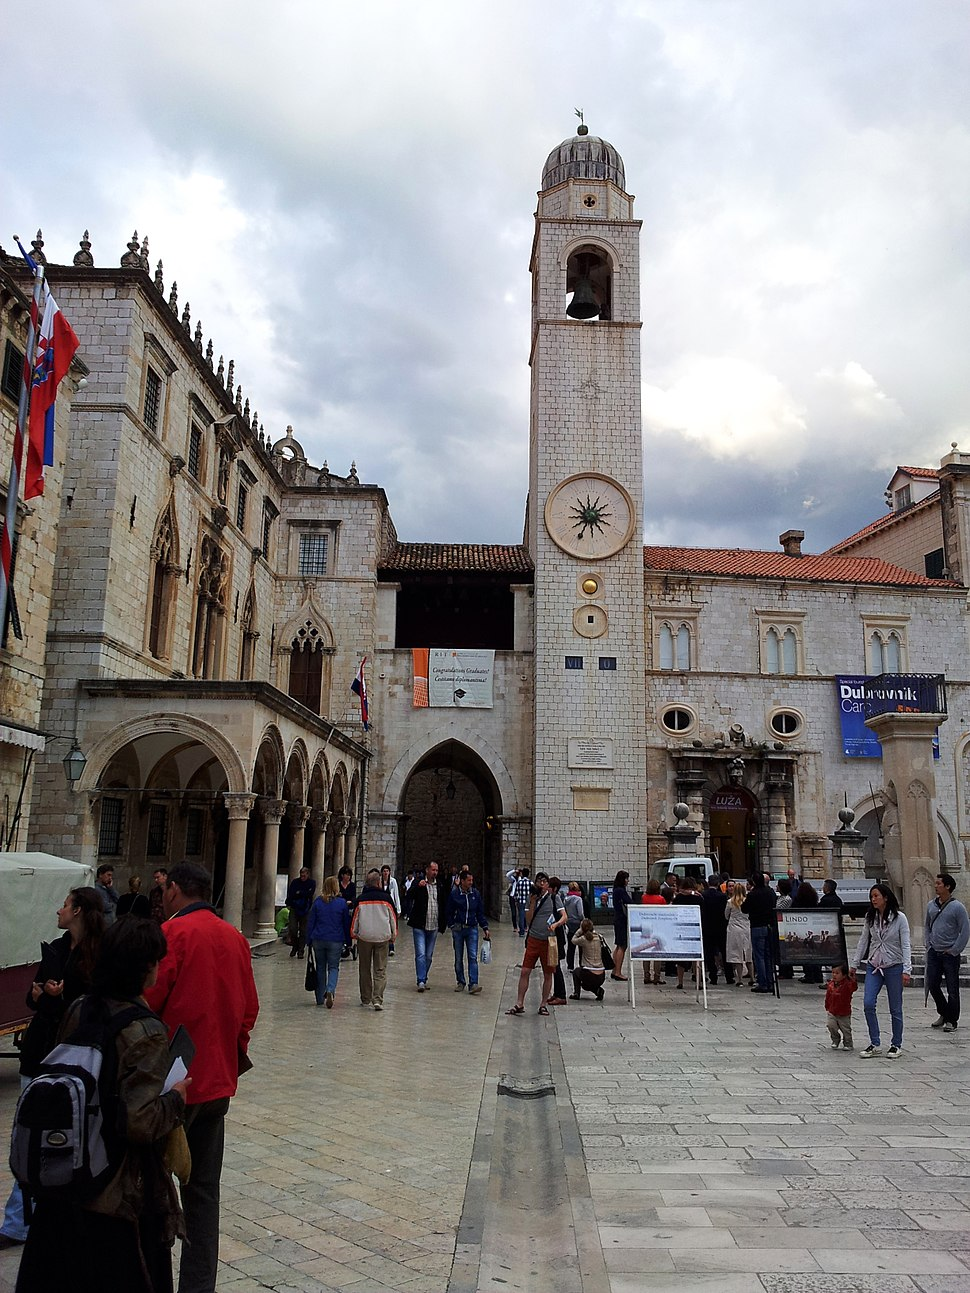 Dubrovnik Street and Facade